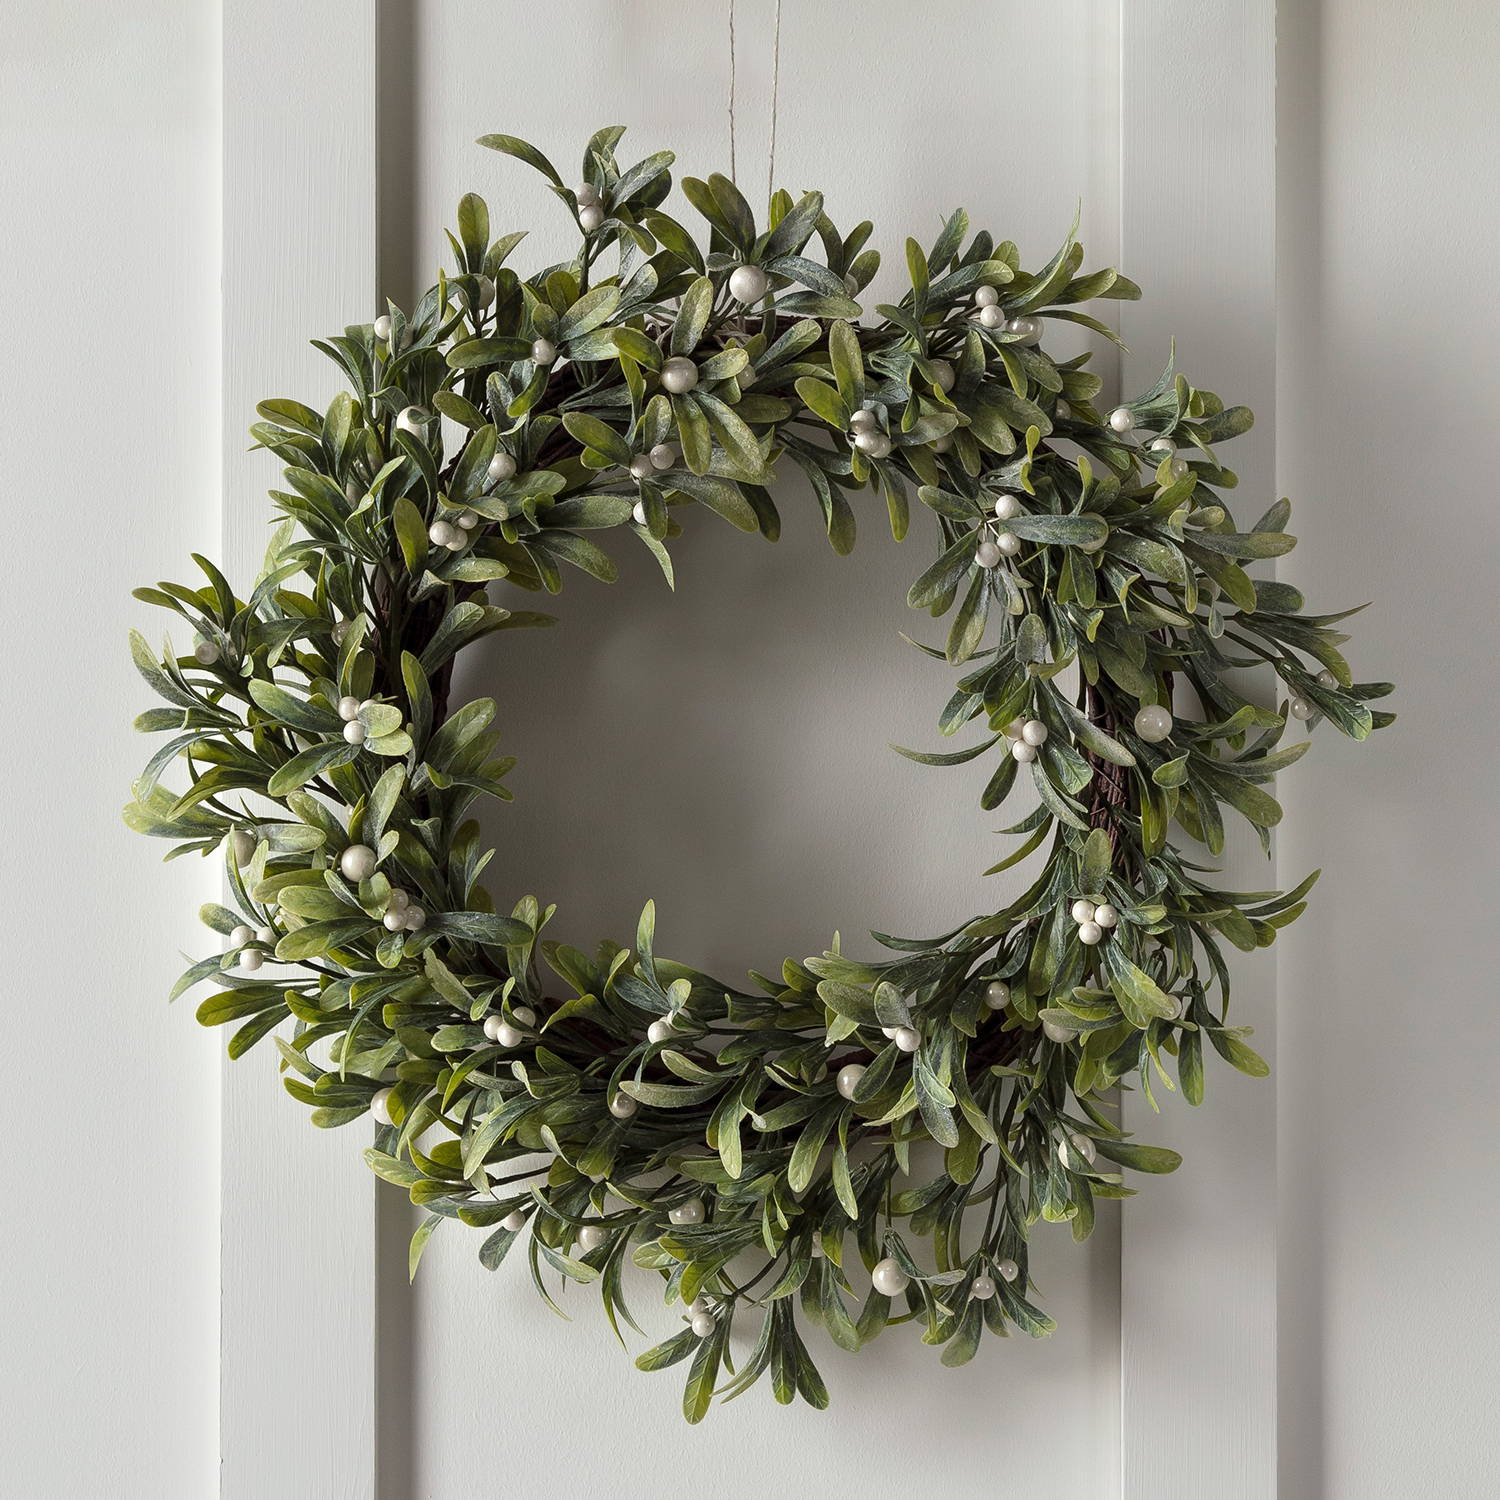 green leaf mistletoe Christmas wreath hung up on white background